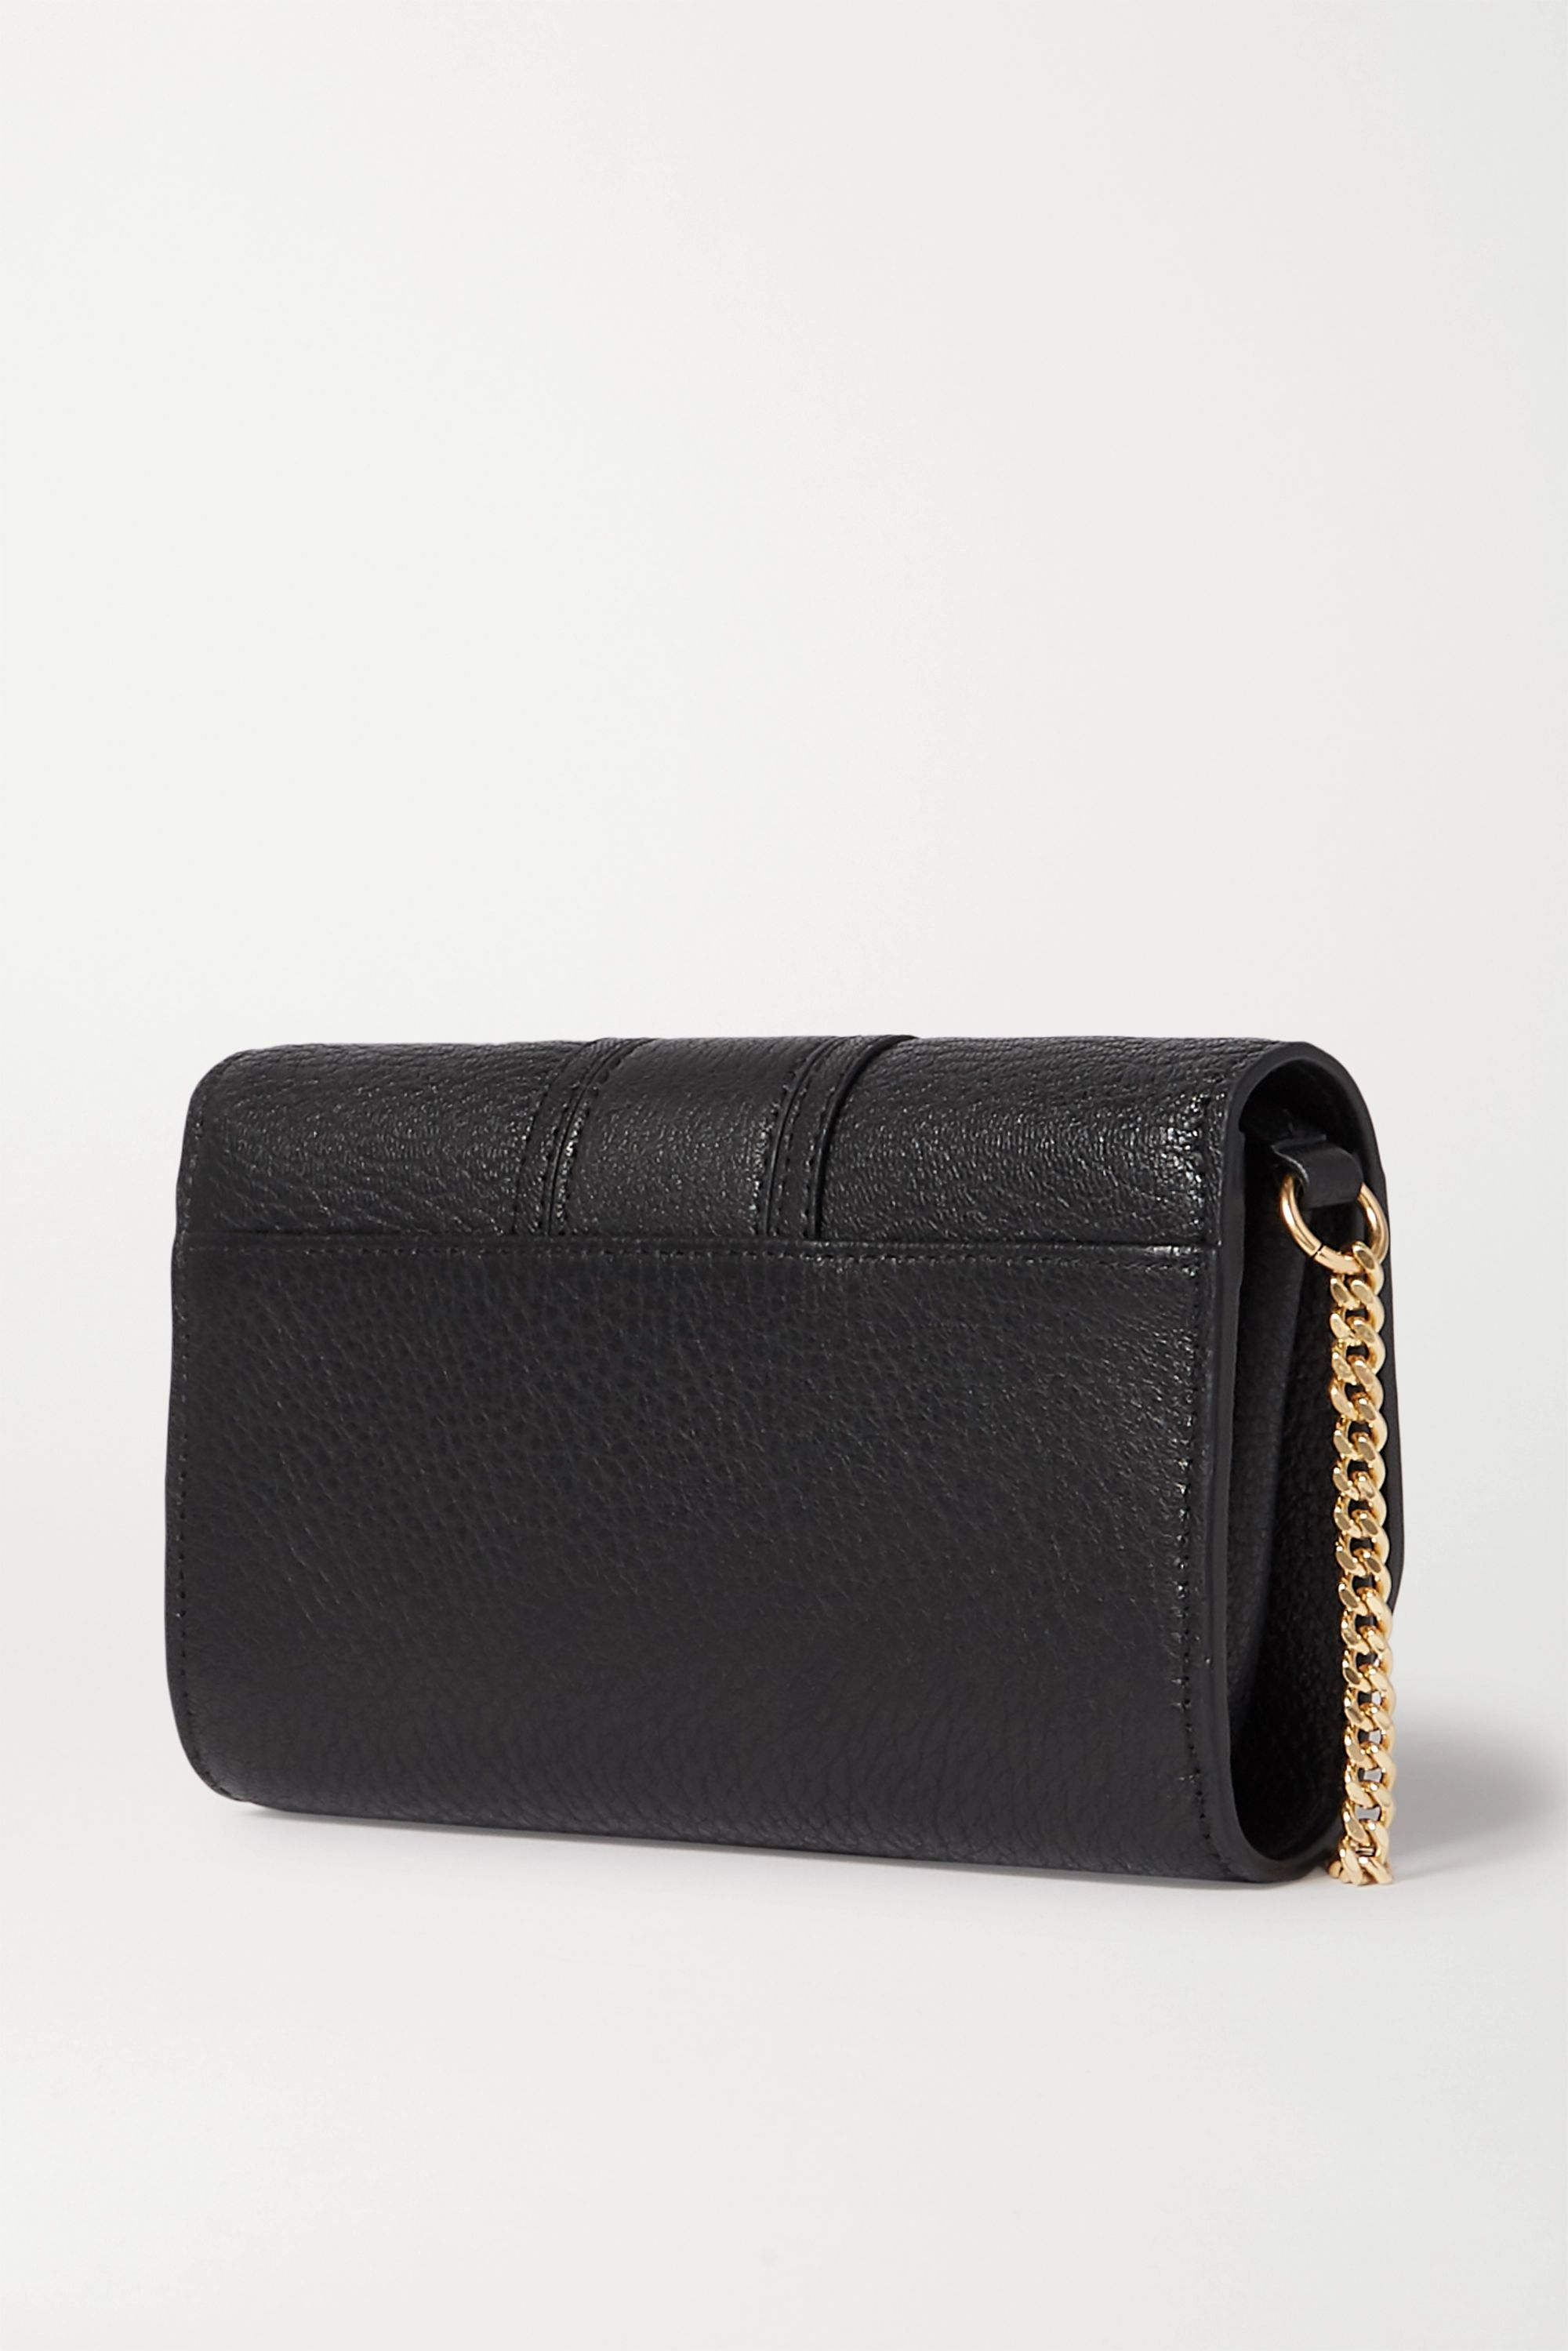 See By Chloé Hana textured-leather shoulder bag